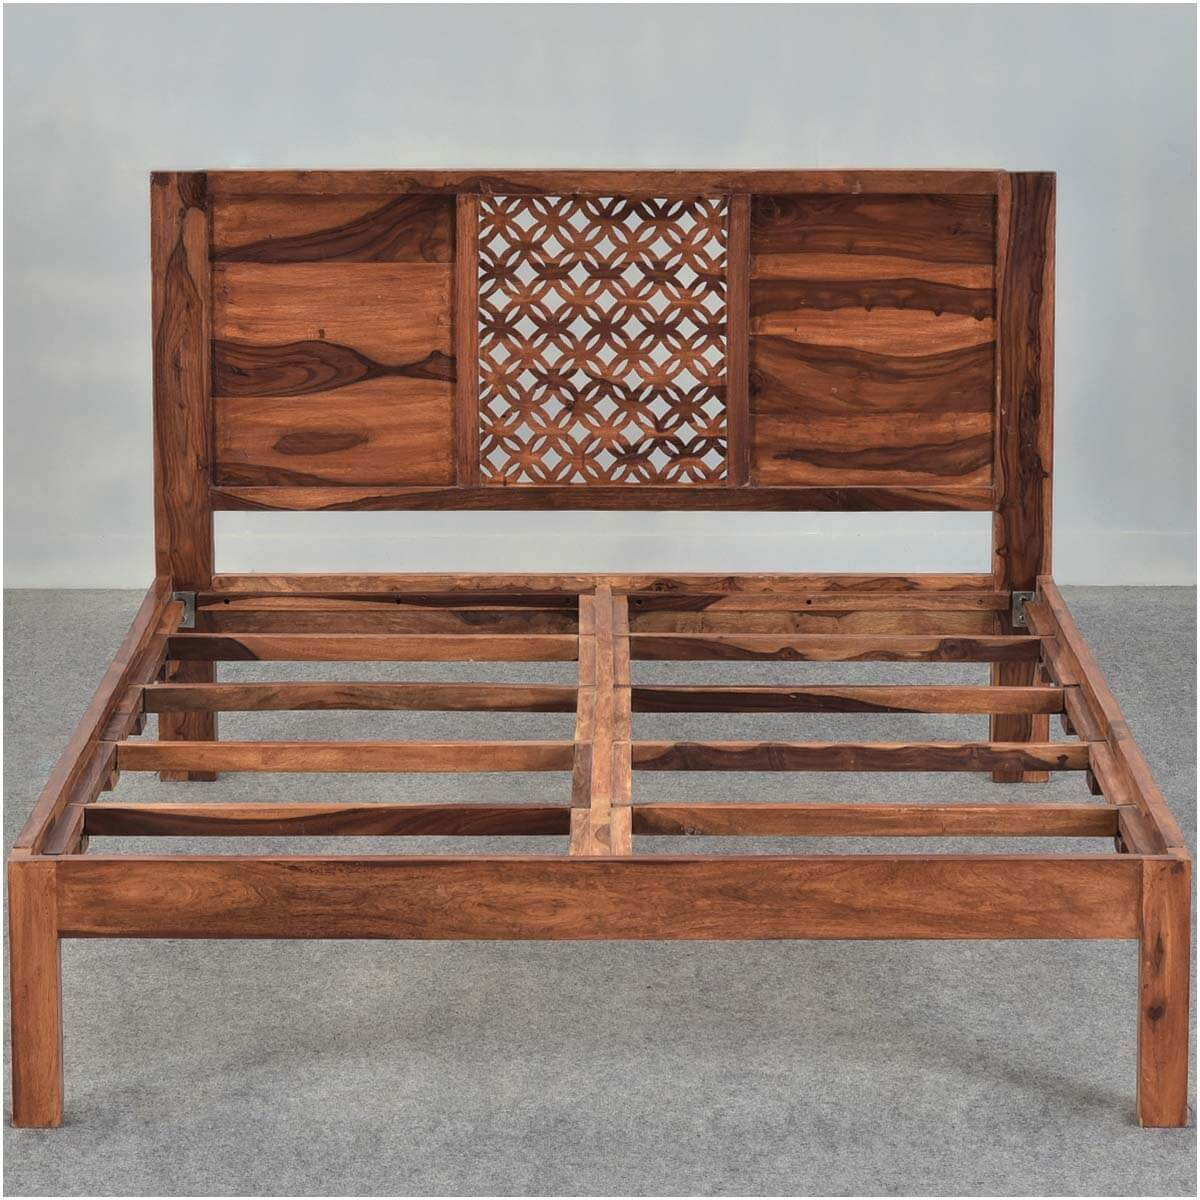 ... Diamond Lattice Solid Wood Rustic Platform Bed Frame w Headboard